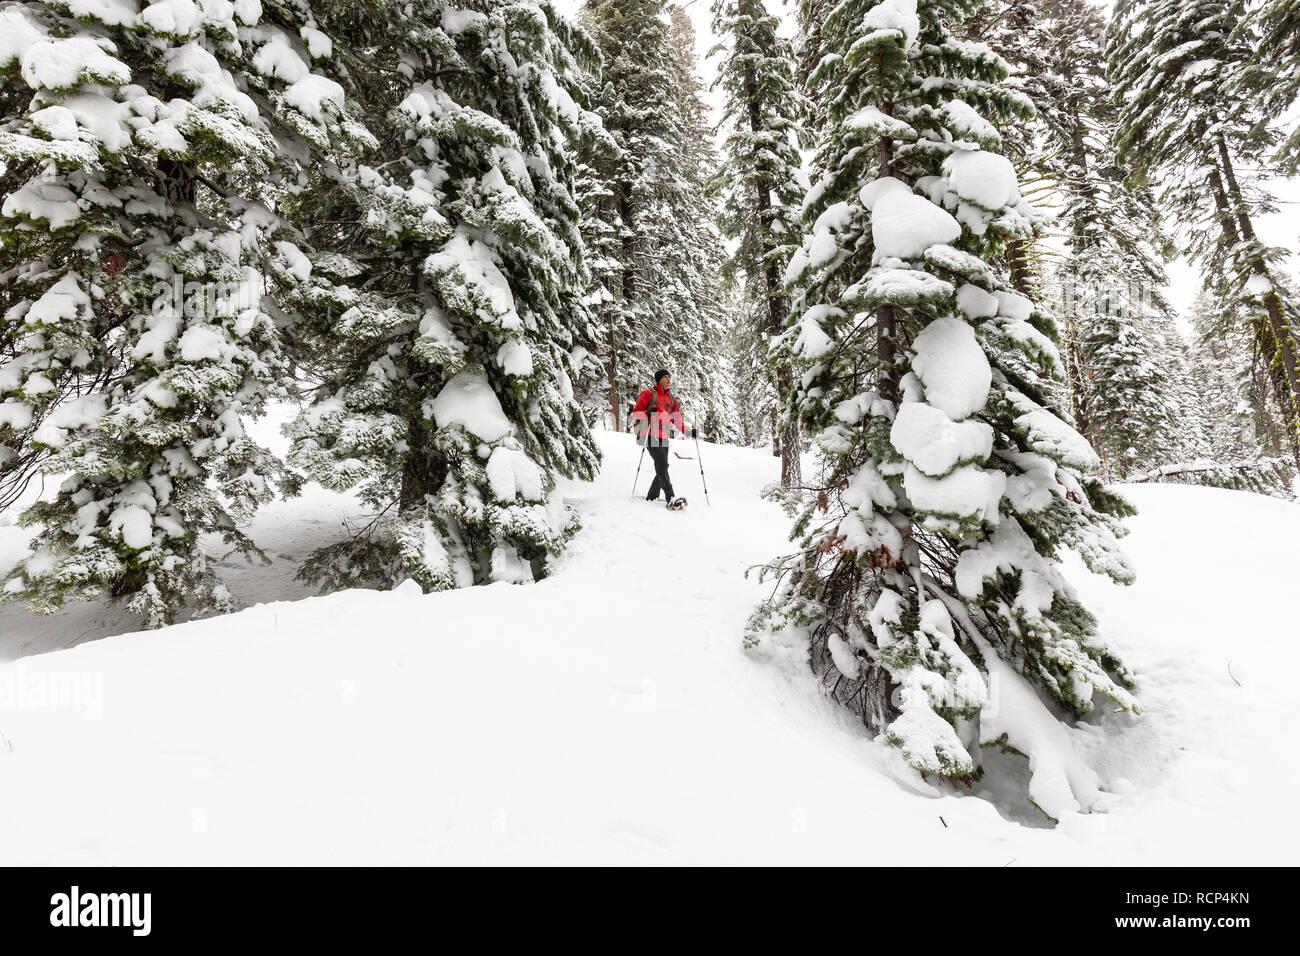 A snowshoer hikes through fresh snow, making first tracks between snow-covered trees in Eldorado National Forest. - Stock Image